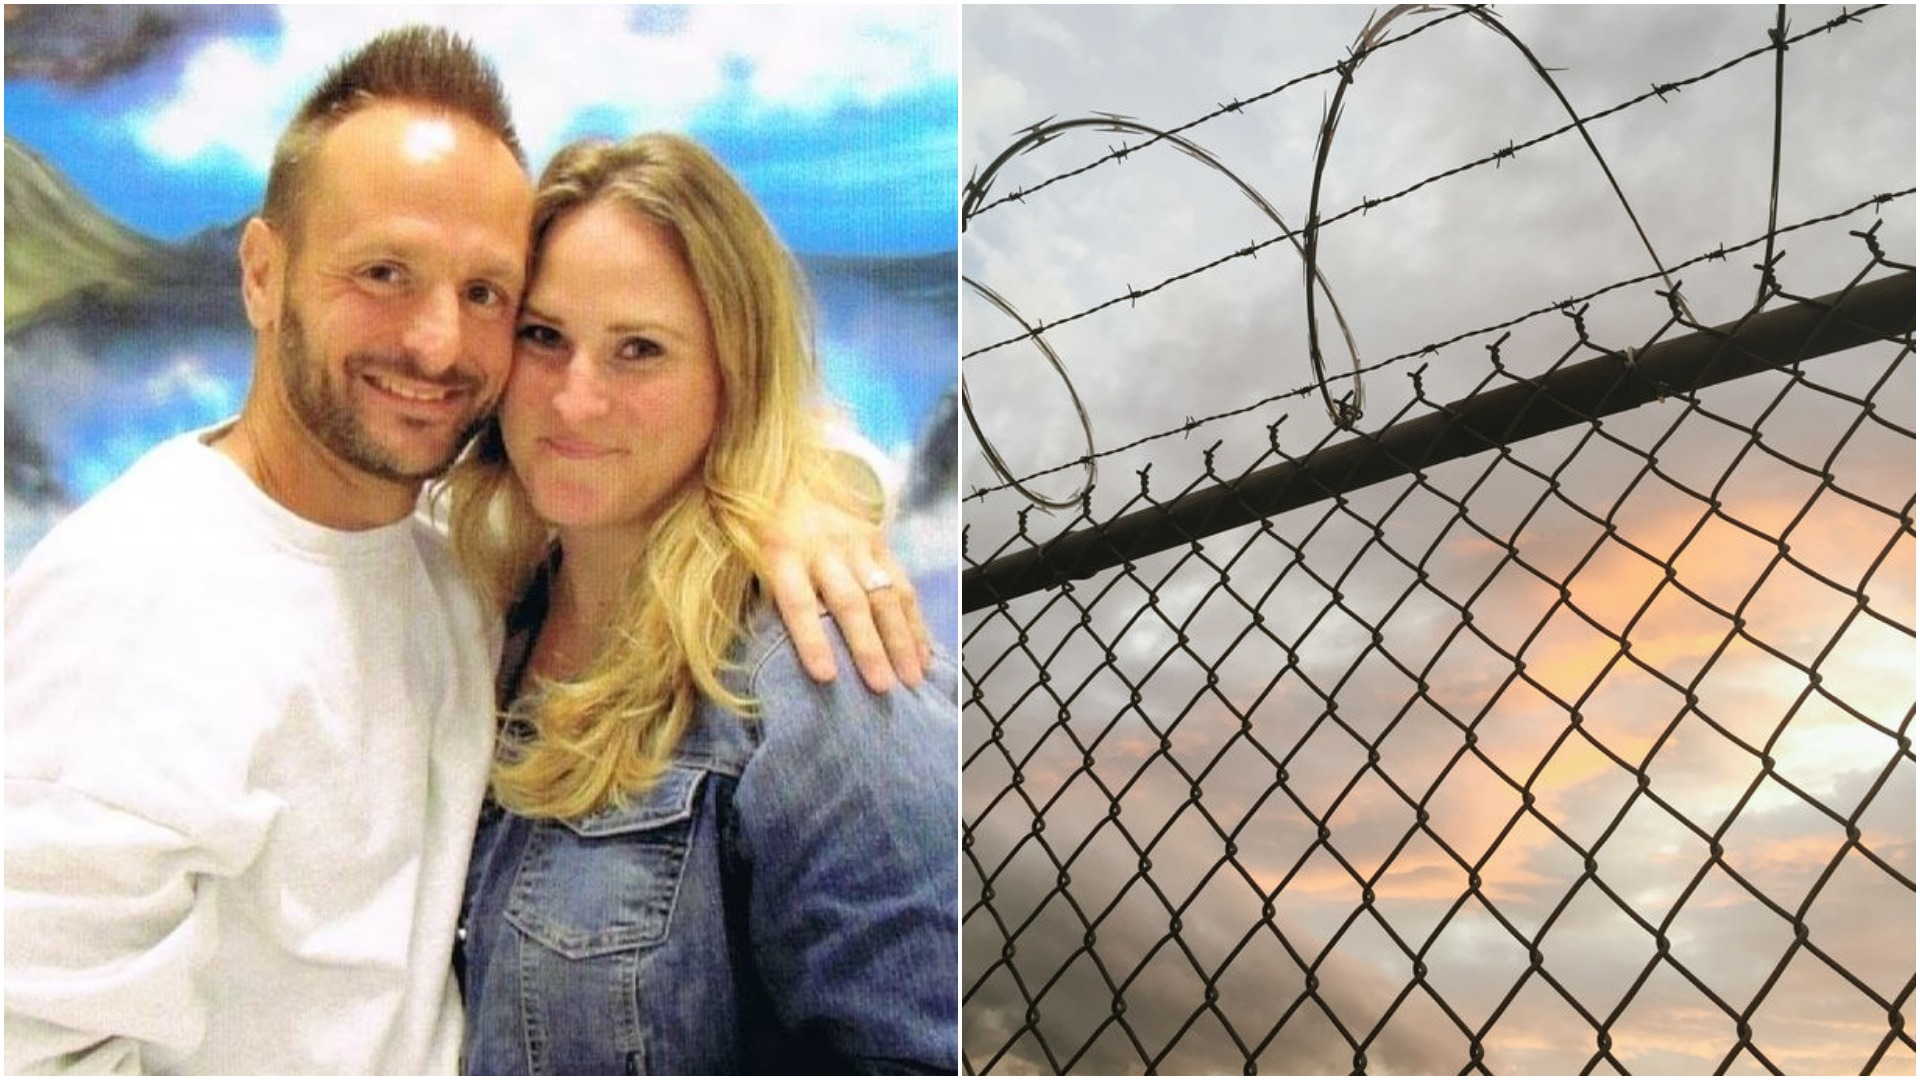 After Marrying Her Prison Pen Pal, This Woman is Sharing Inmates